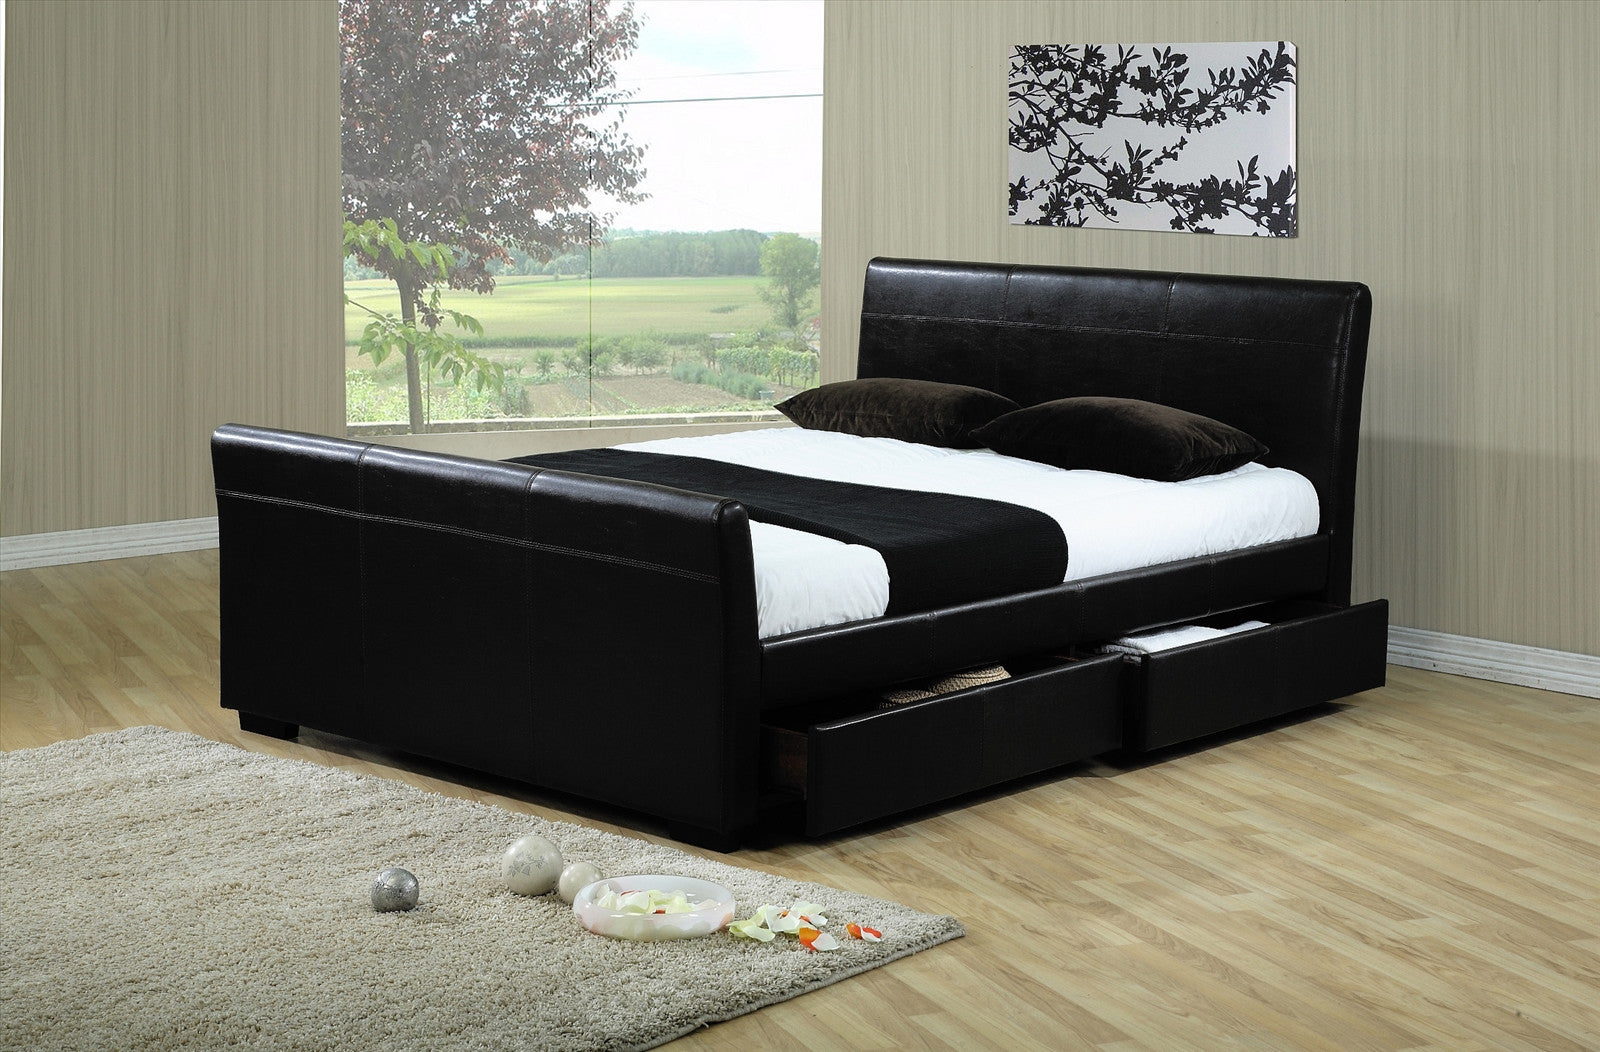 Houston 4 Drawer Bed in Black